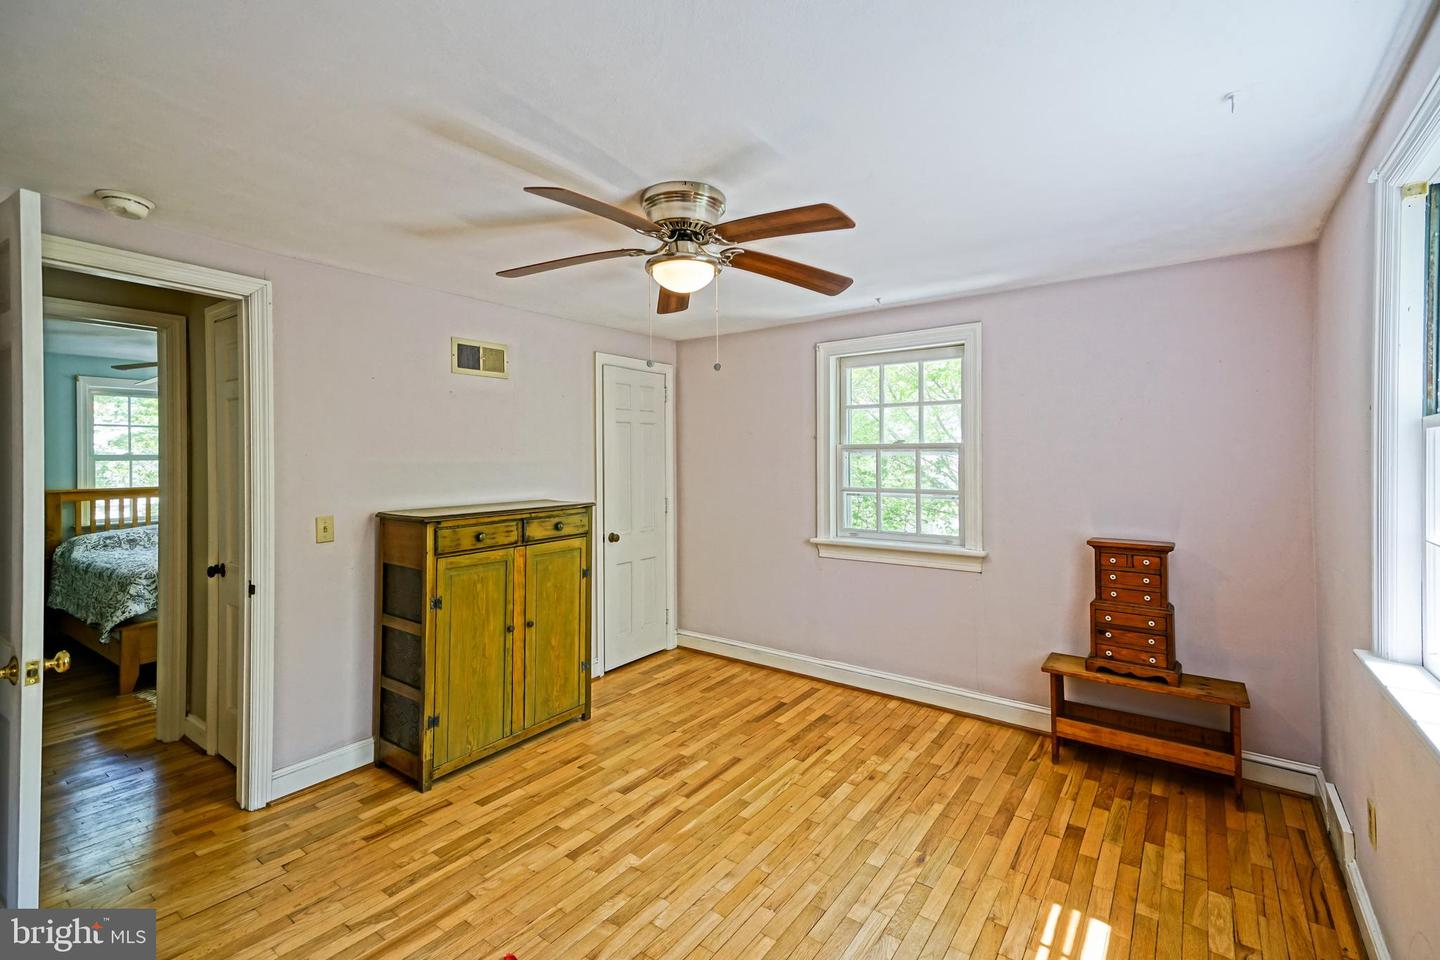 DESU139300-301676344132-2019-07-11-10-36-20 59 Devries Cir | Lewes, DE Real Estate For Sale | MLS# Desu139300  - Lee Ann Group